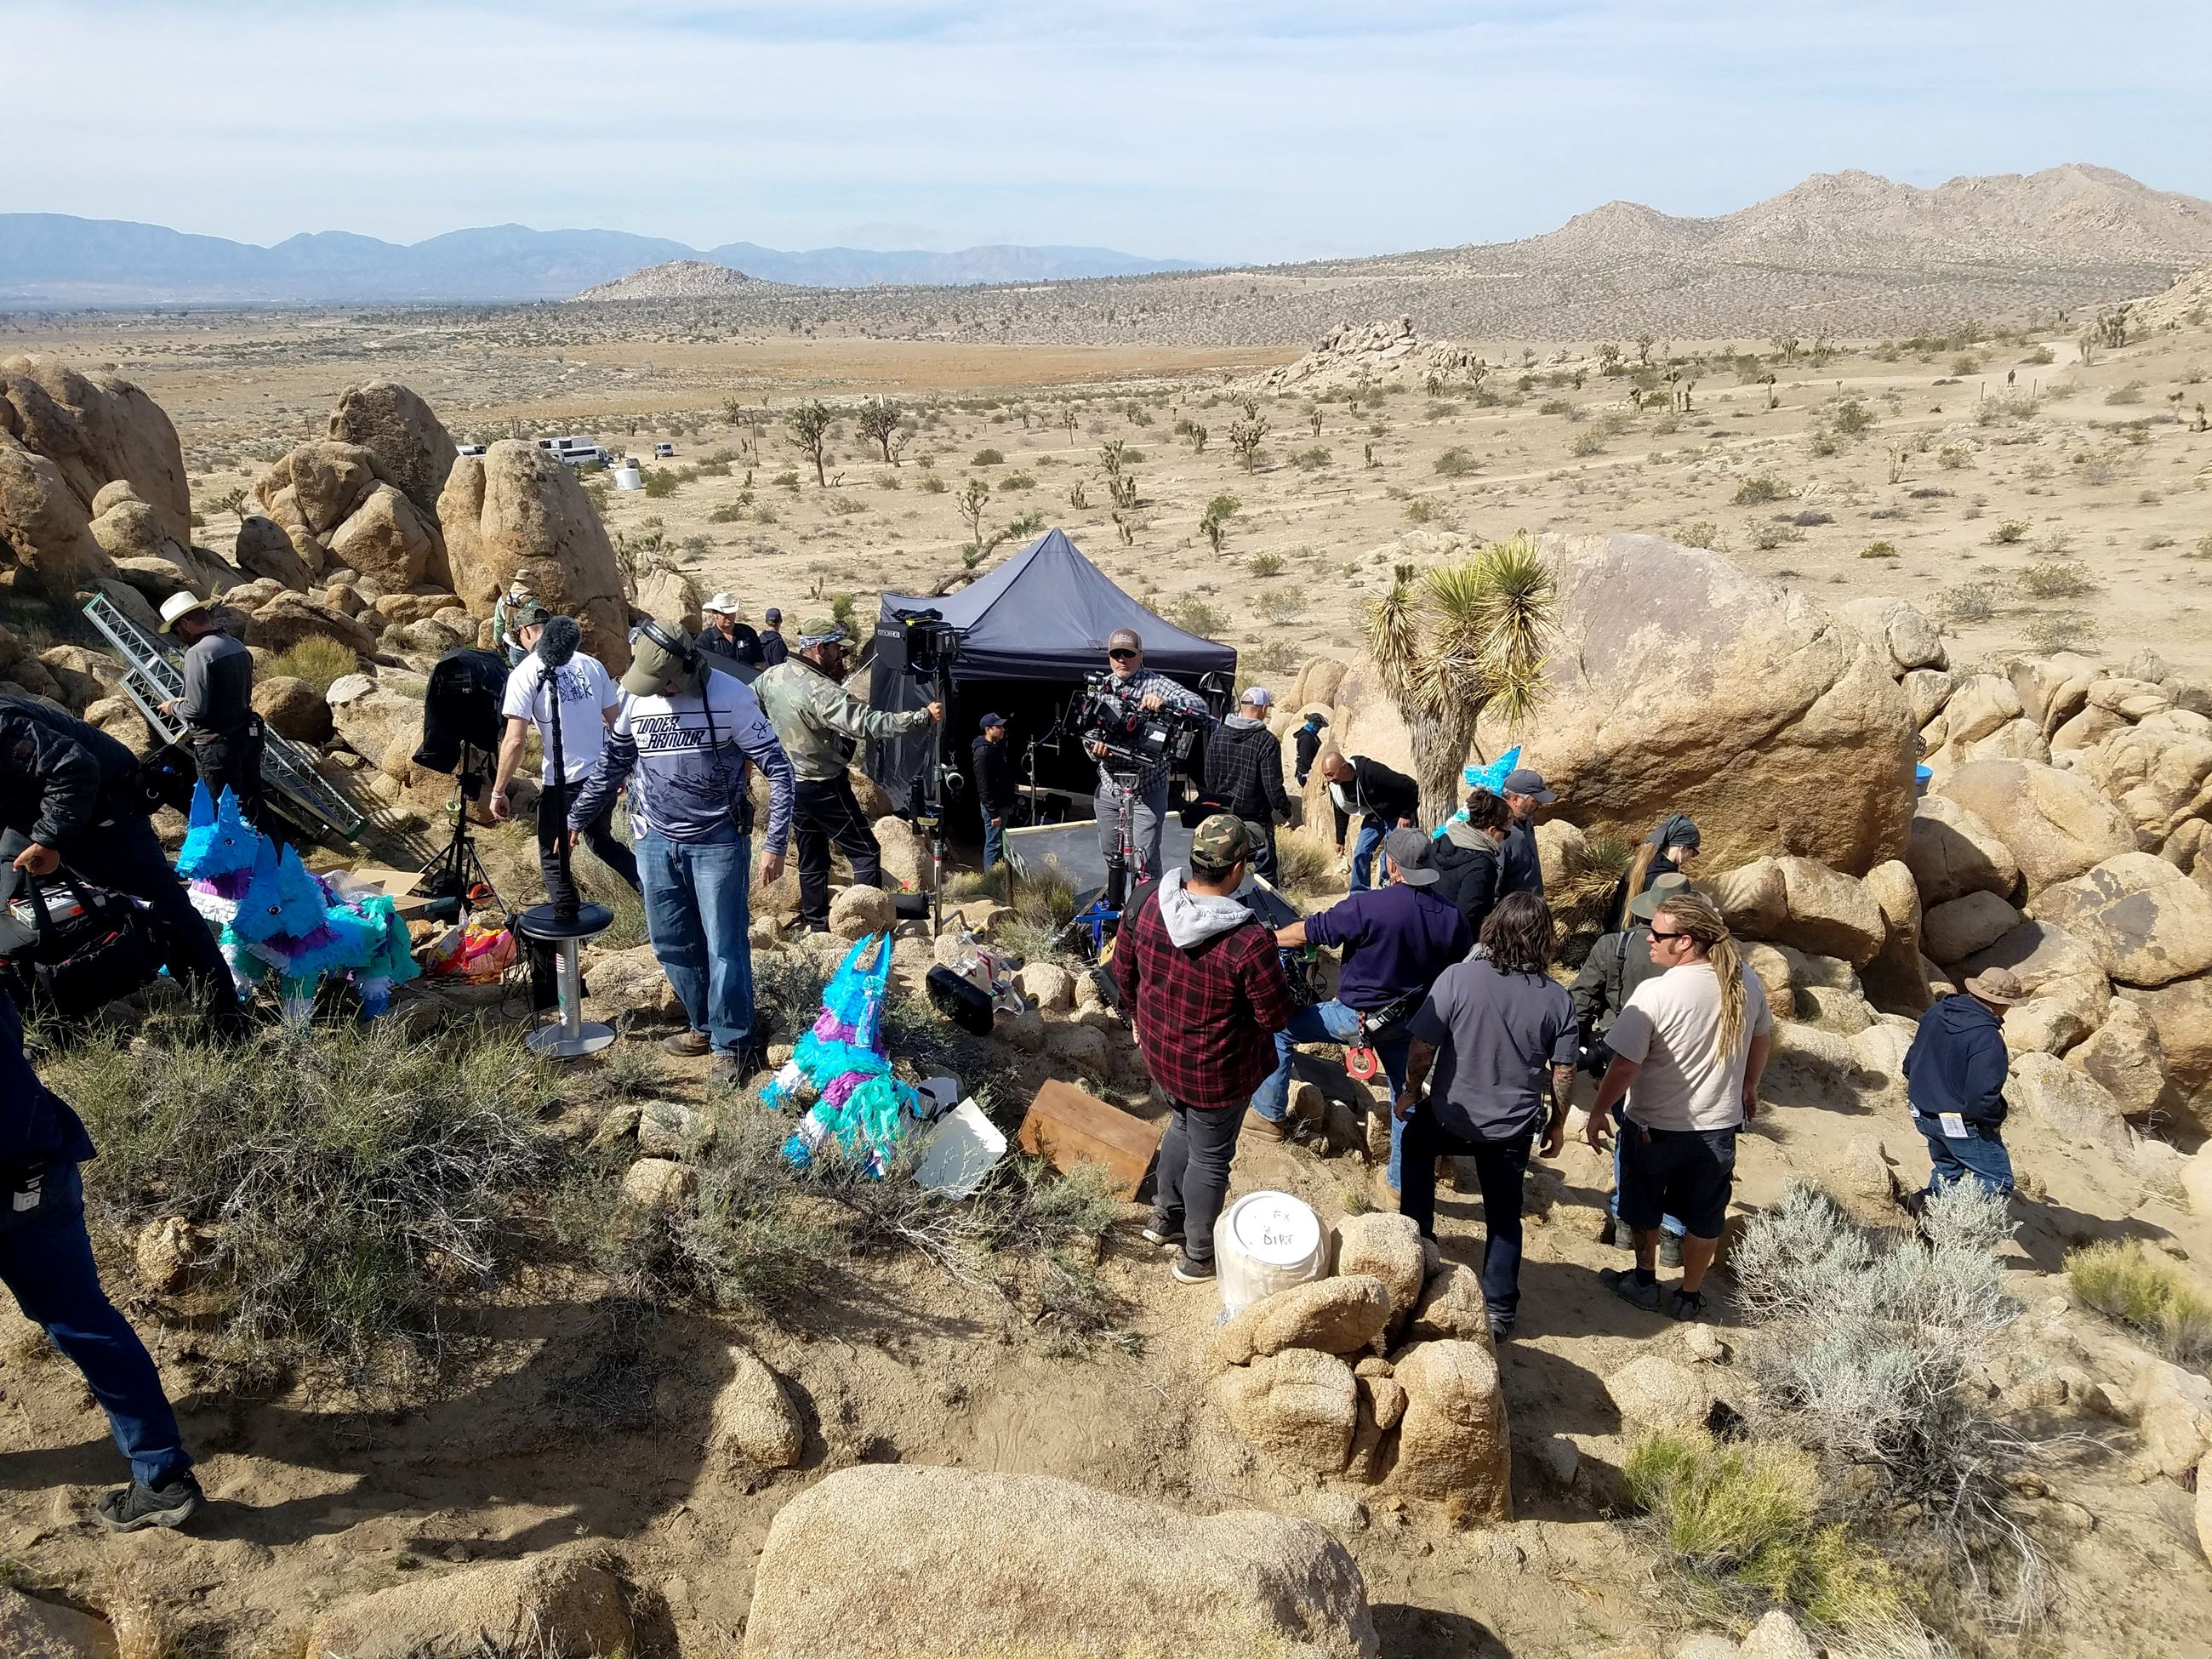 Filming a scene with the crew standing on rocks in the desert